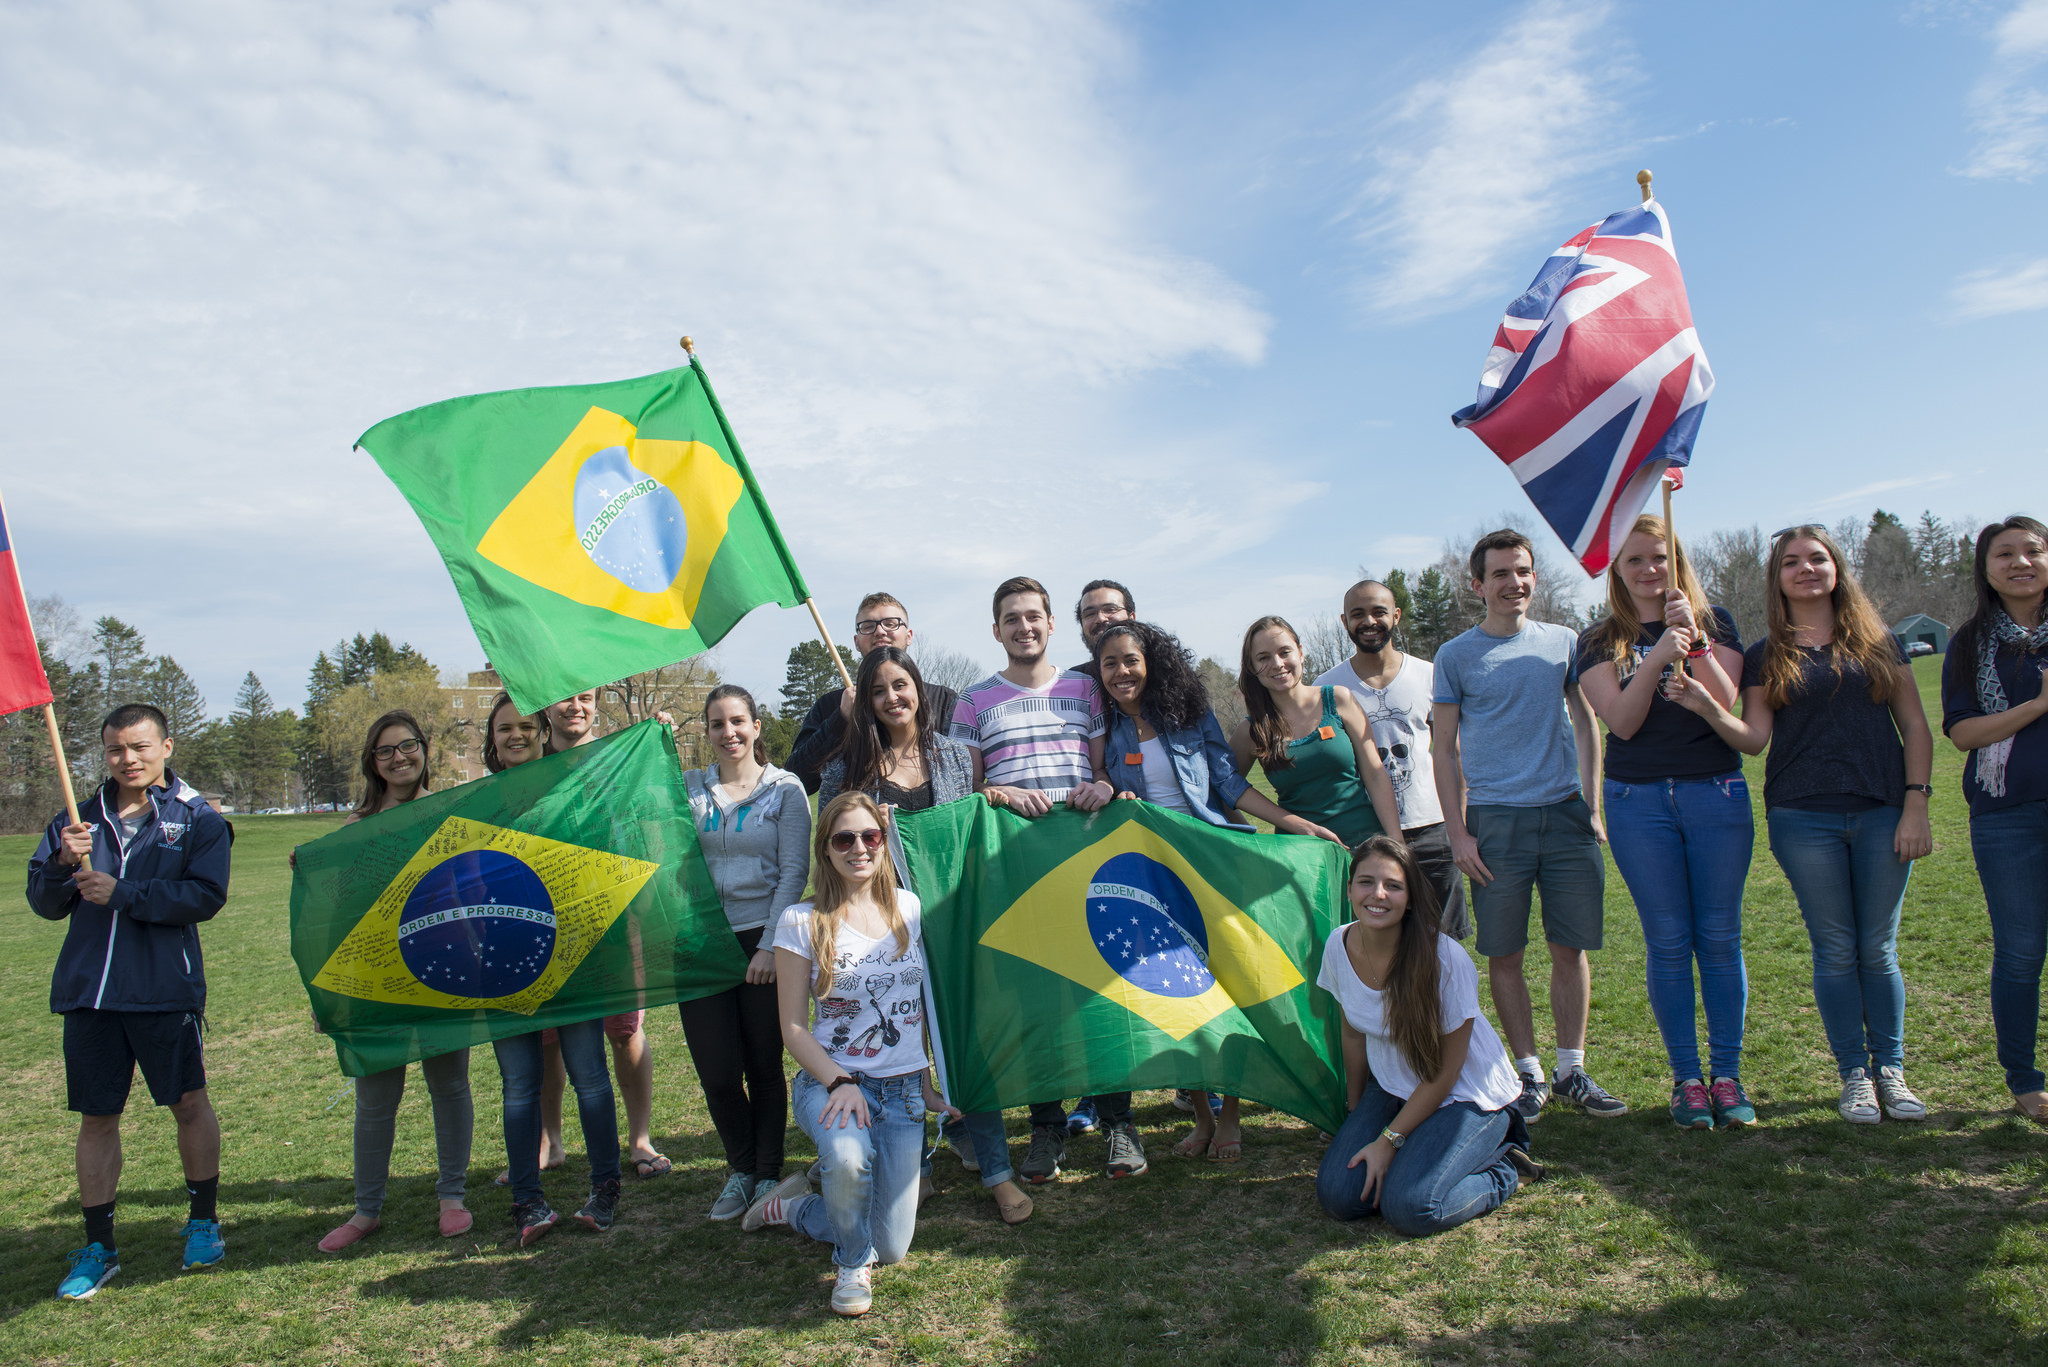 Brazil group with flags